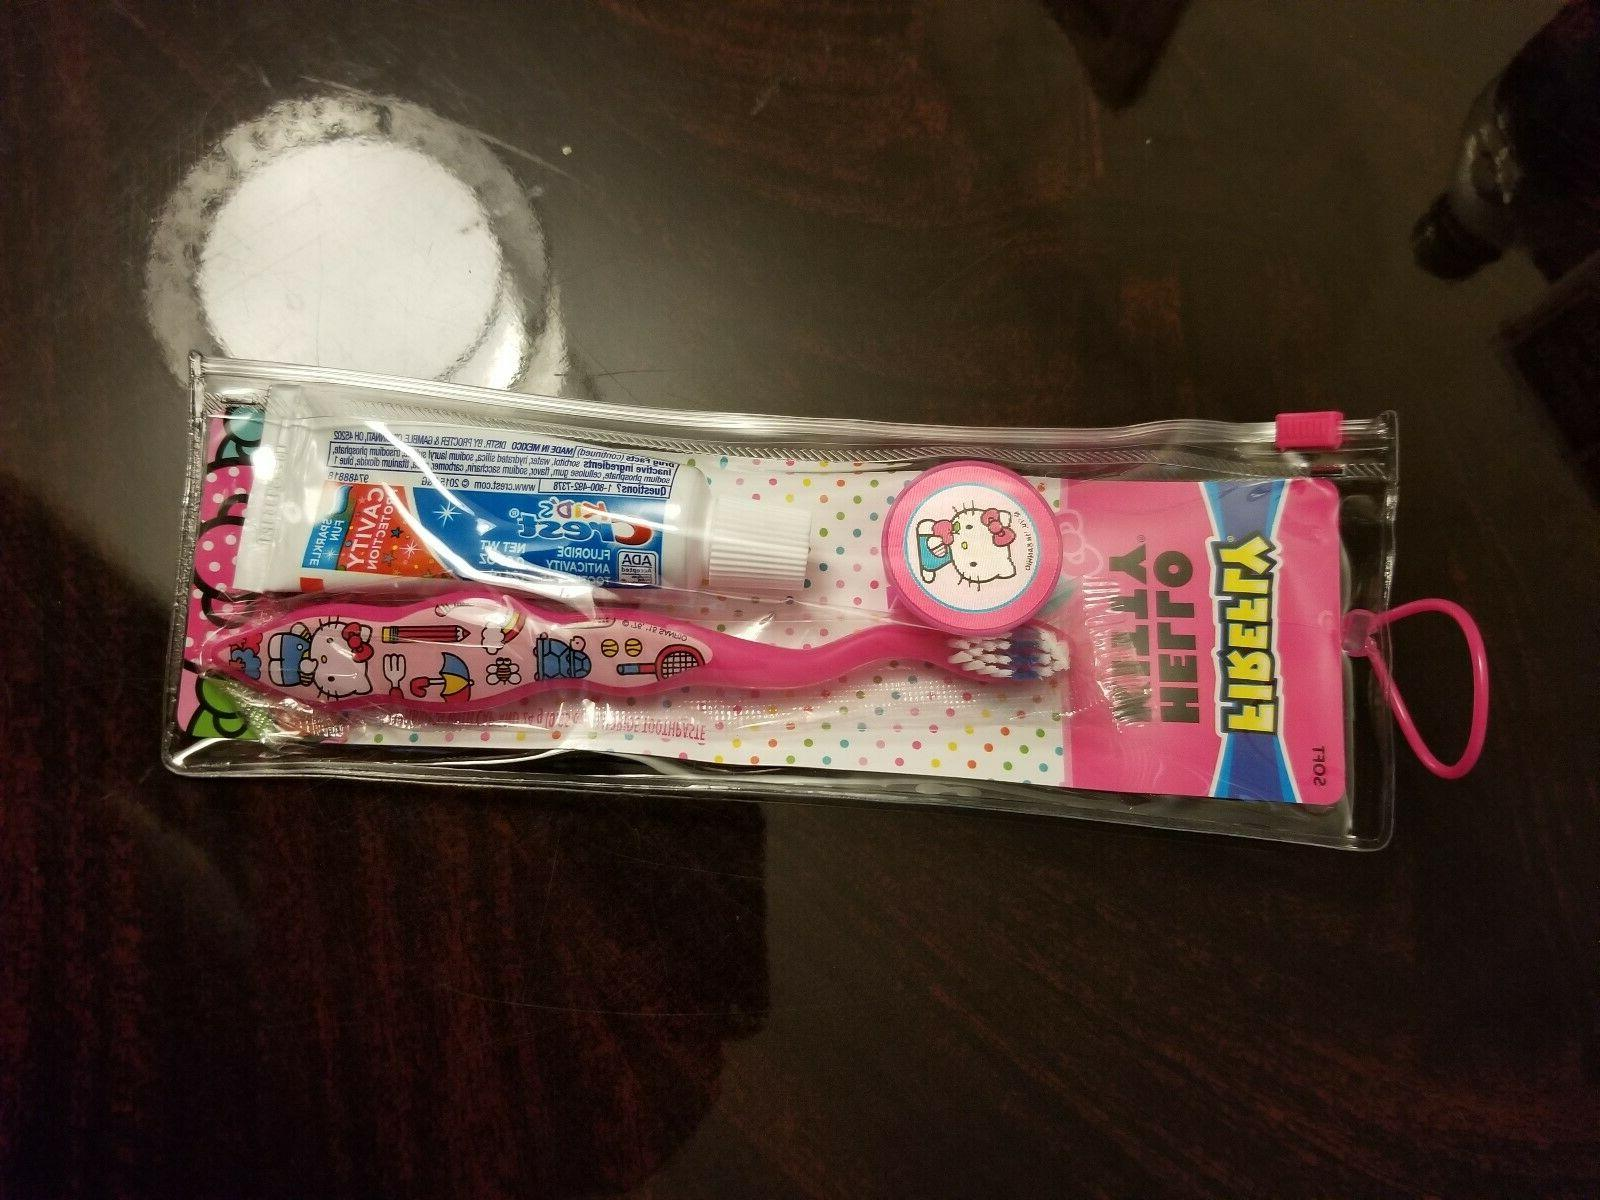 Firefly Oral Care Travel Kit Hello Kitty Toothbrush